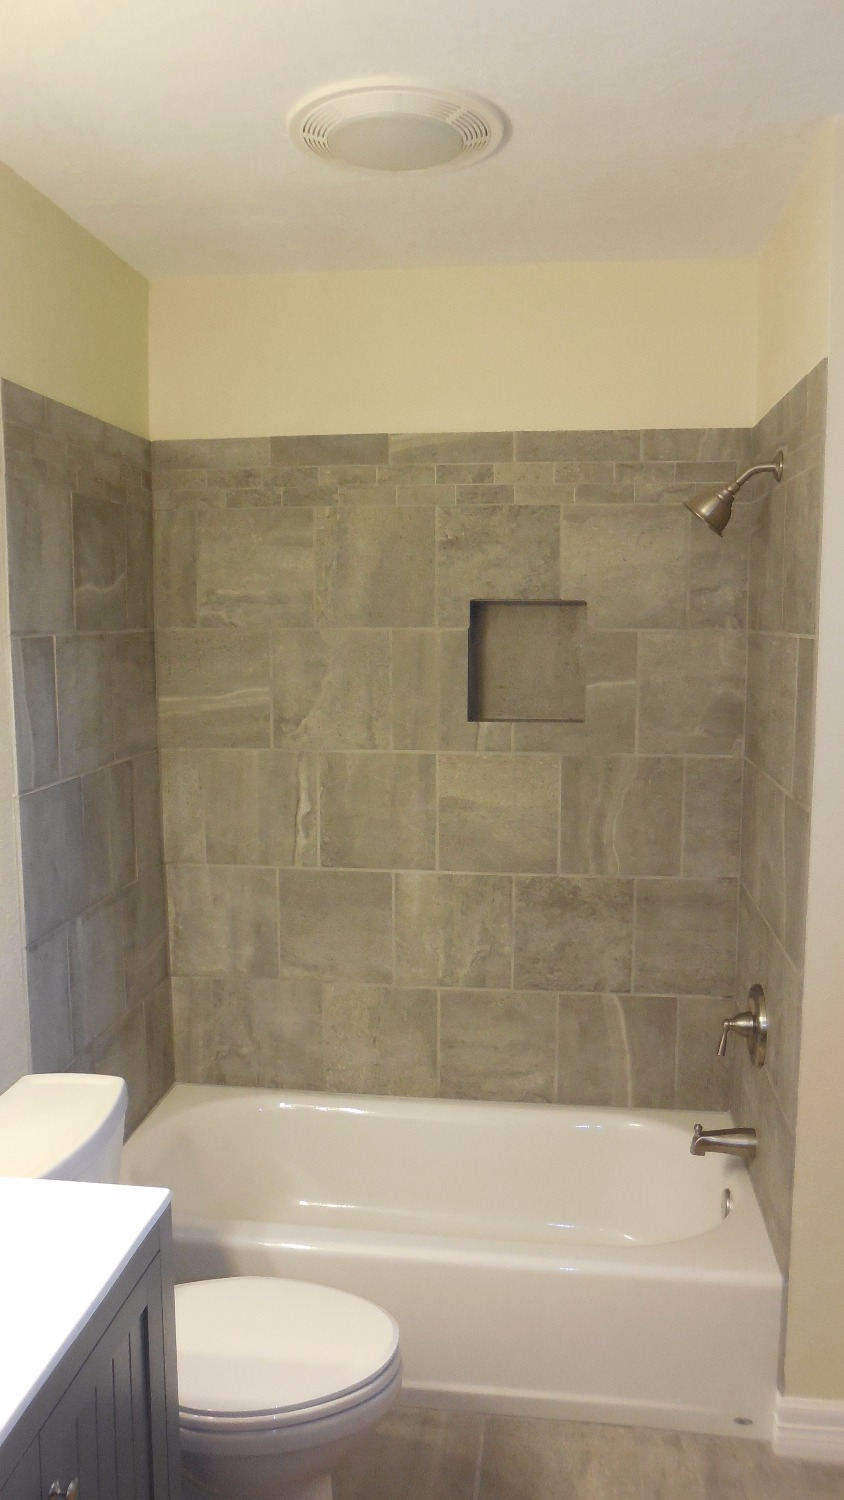 Shower Surround (12 x 12)